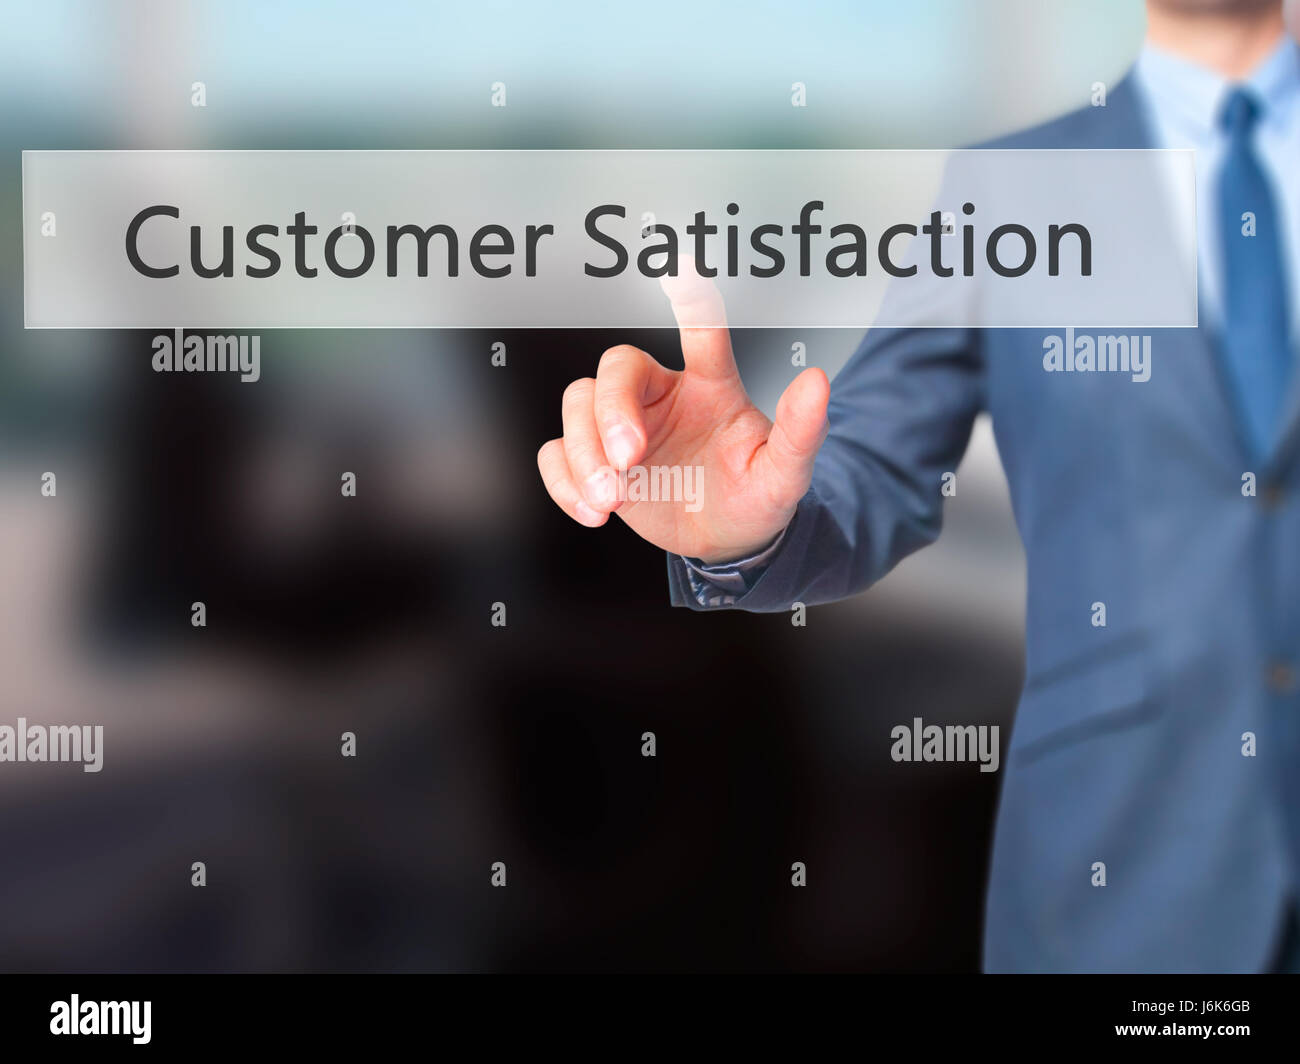 Customer Satisfaction - Businessman hand touch  button on virtual  screen interface. Business, technology concept. - Stock Image